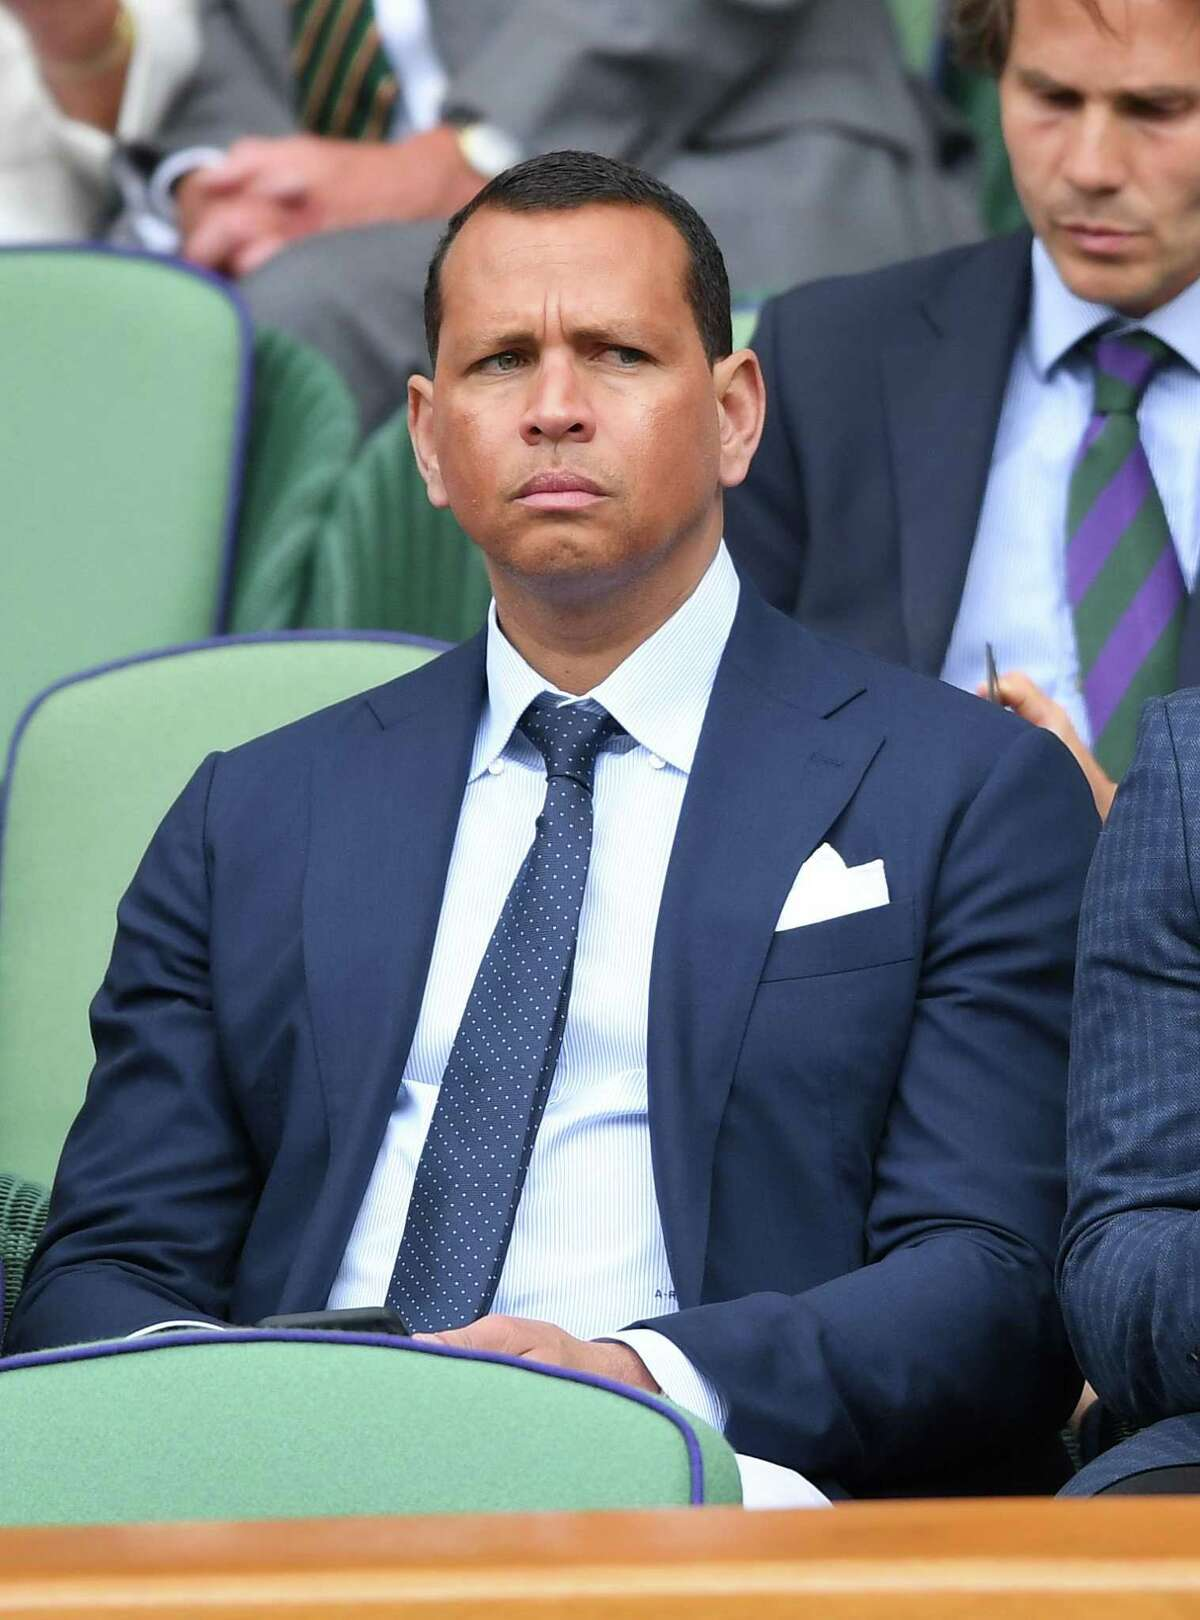 FILE - Alex Rodriguez attends day one of the Wimbledon Tennis Championships at All England Lawn Tennis and Croquet Club on July 01, 2019 in London, England. Rodriguez was part of a group whose car was broken into Sunday in San Francisco, with items initially reported as totaling $500,000. A rep for Rodriguez later disputed that figure.